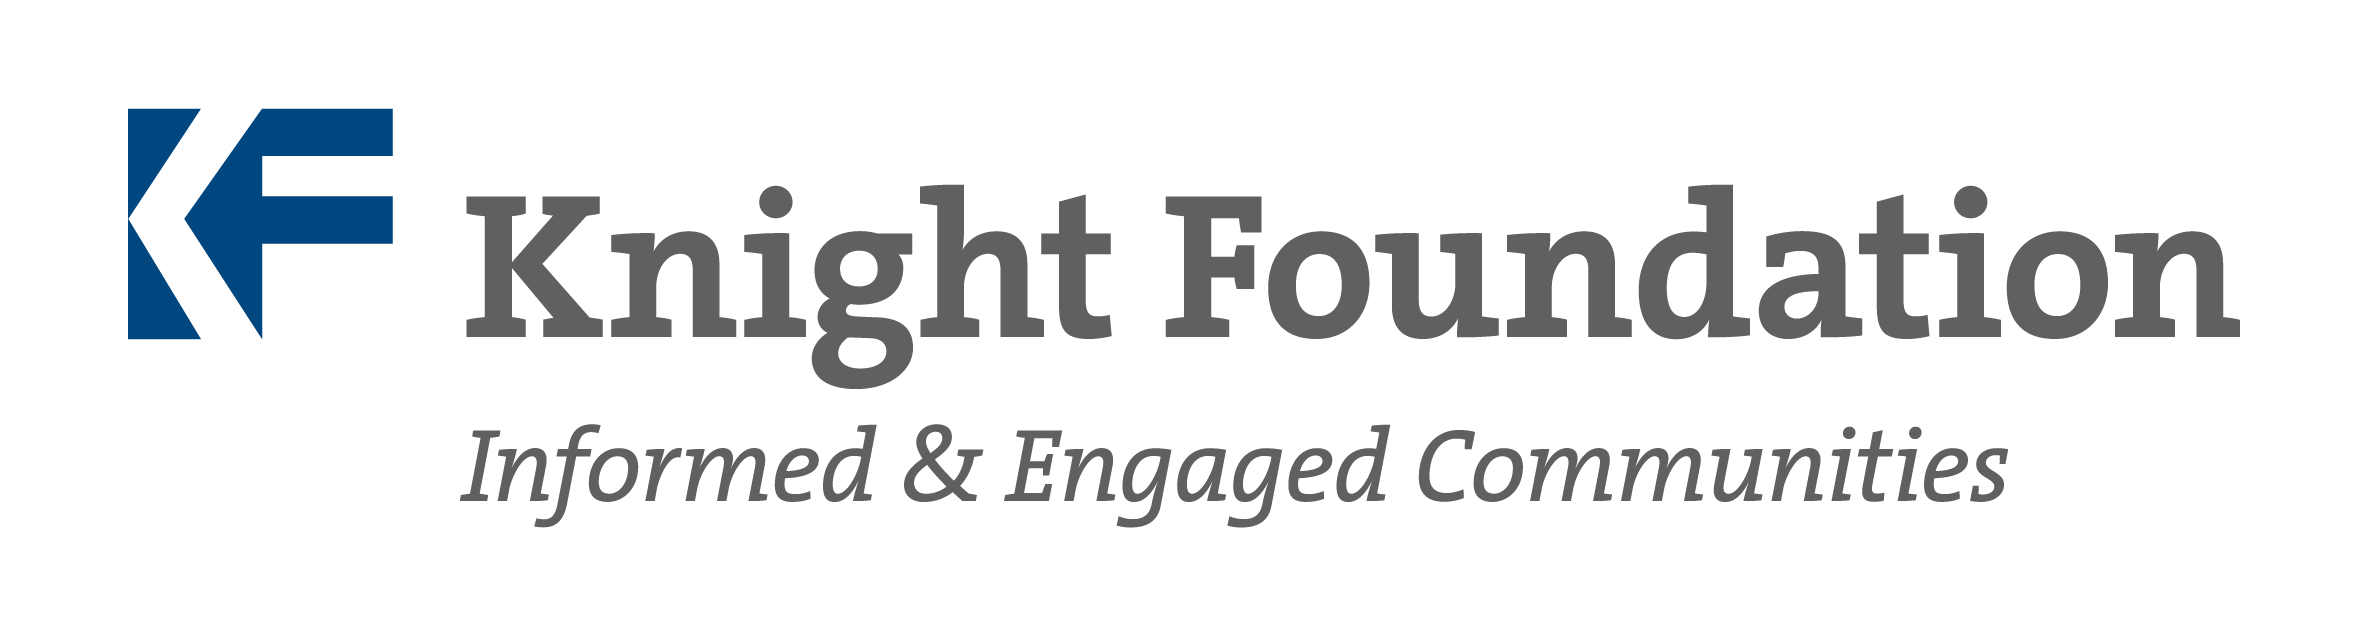 client_knight foundation.png